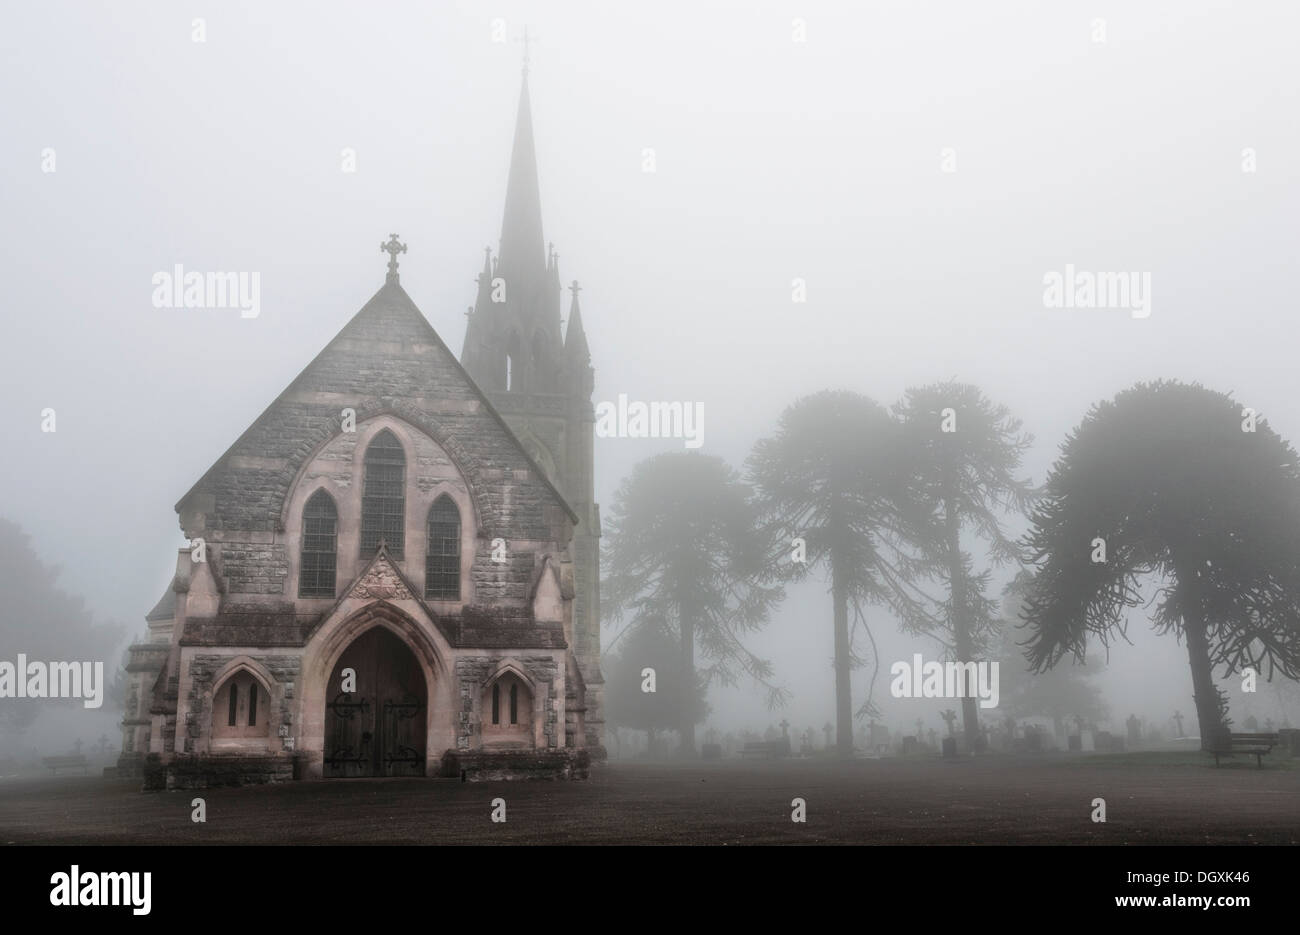 Old Church in a creepy foggy cemetery - Stock Image